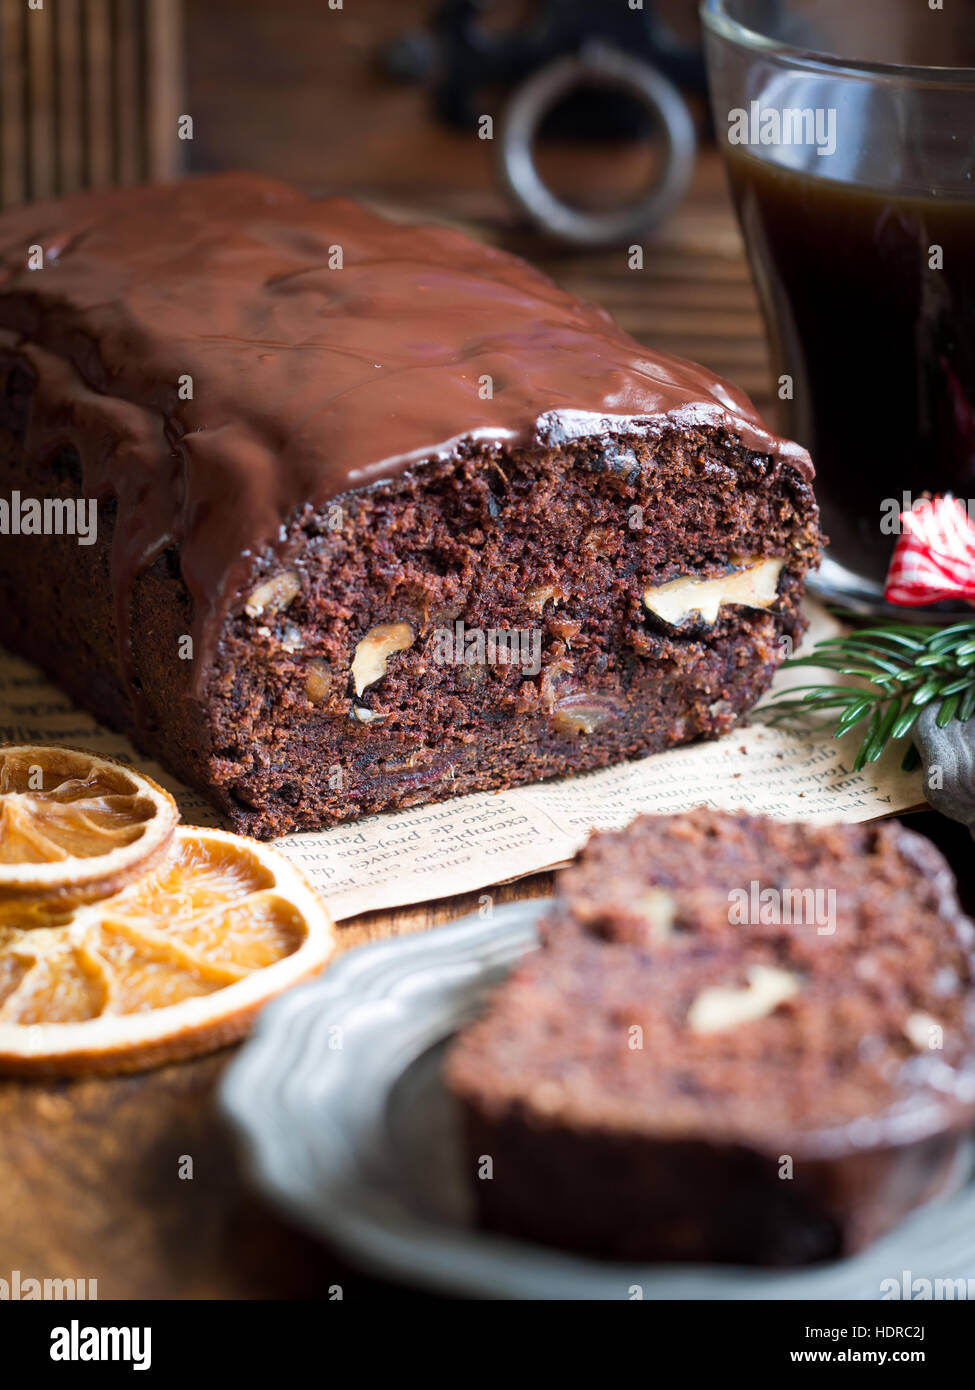 Gluten-free gingerbread made with green banana flour, dates and nuts. - Stock Image